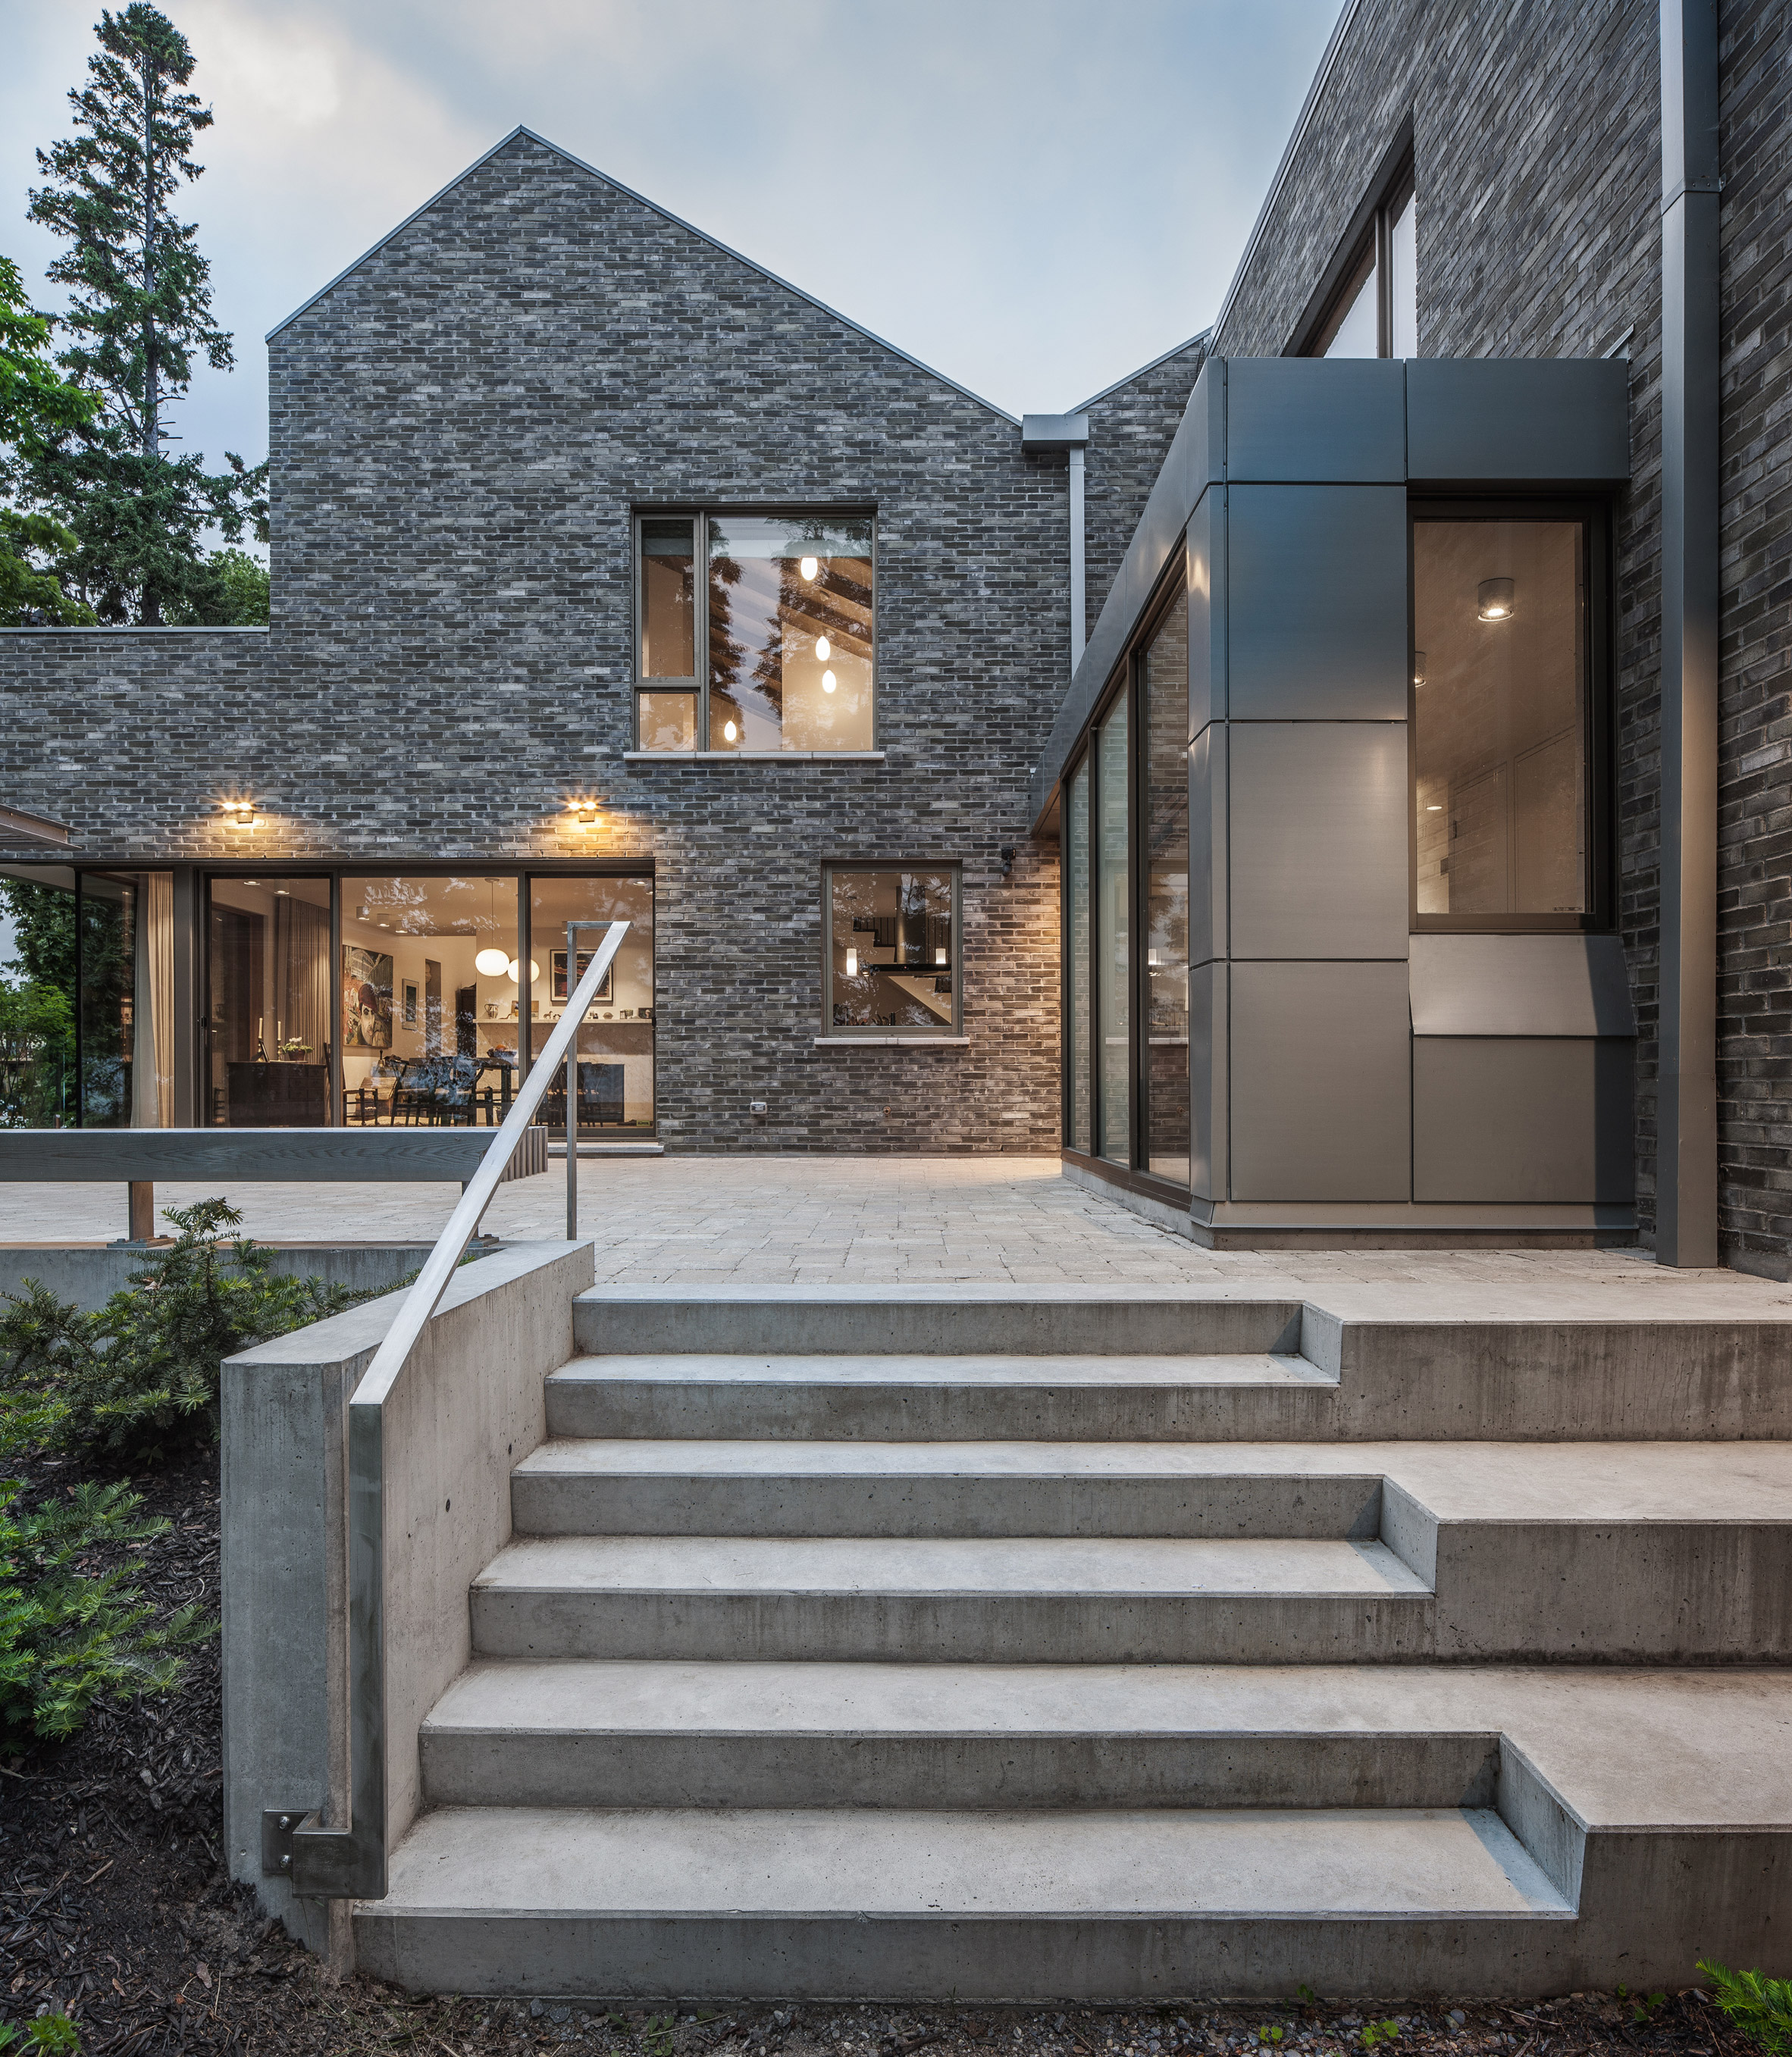 Corbourg residence by Trevor Horne Architects and Philip Goldsmith